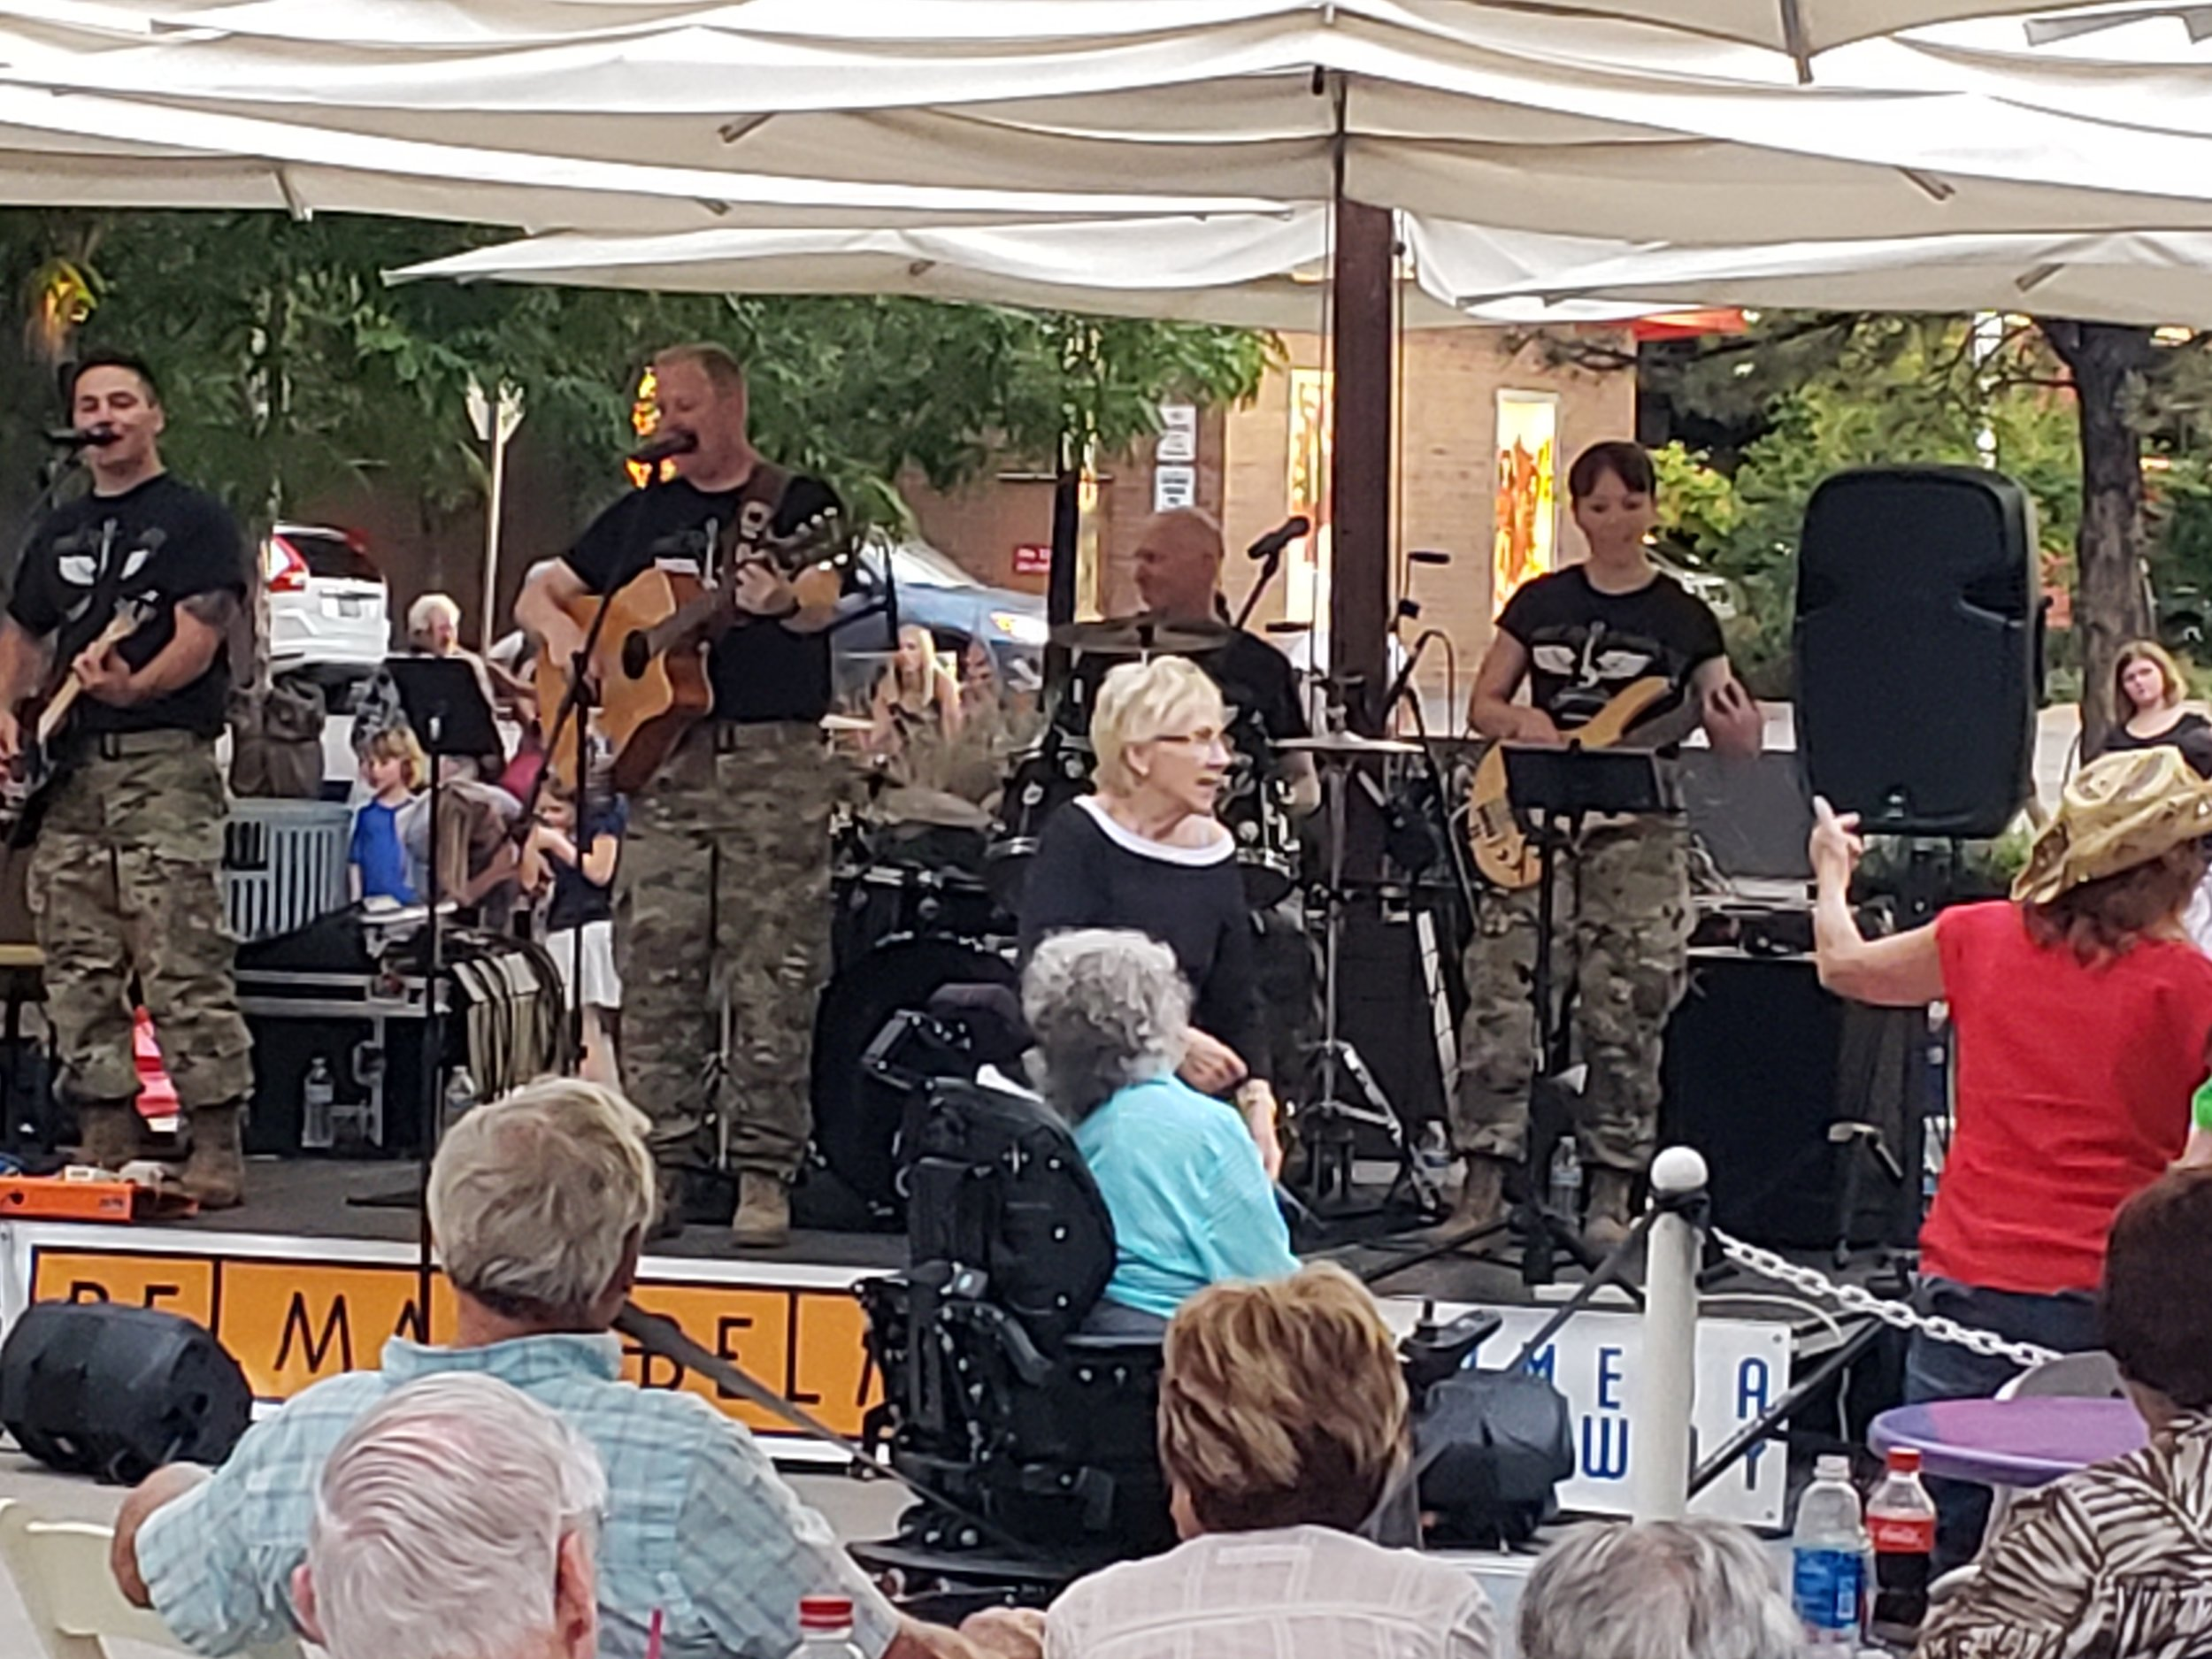 Belmar MUsic on the Plaza 101st Army Country Band (1).jpg